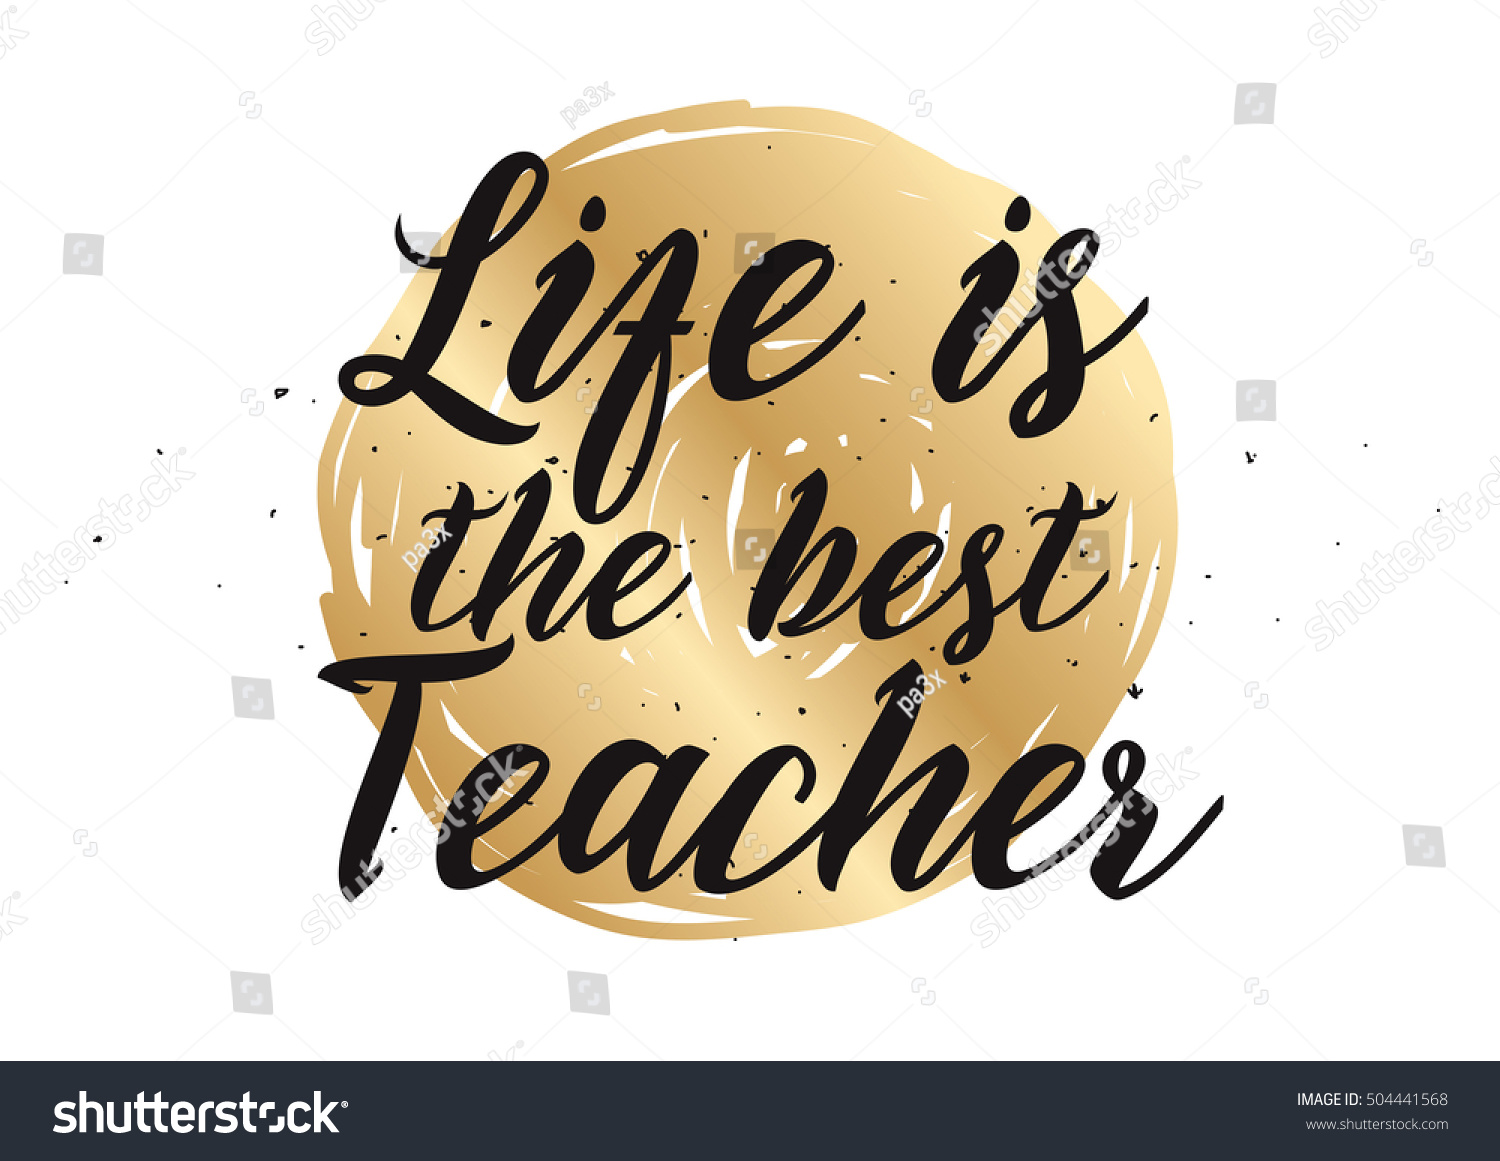 Life best teacher philosophical inspirational inscription stock life is the best teacher philosophical inspirational inscription greeting card with calligraphy hand drawn kristyandbryce Images